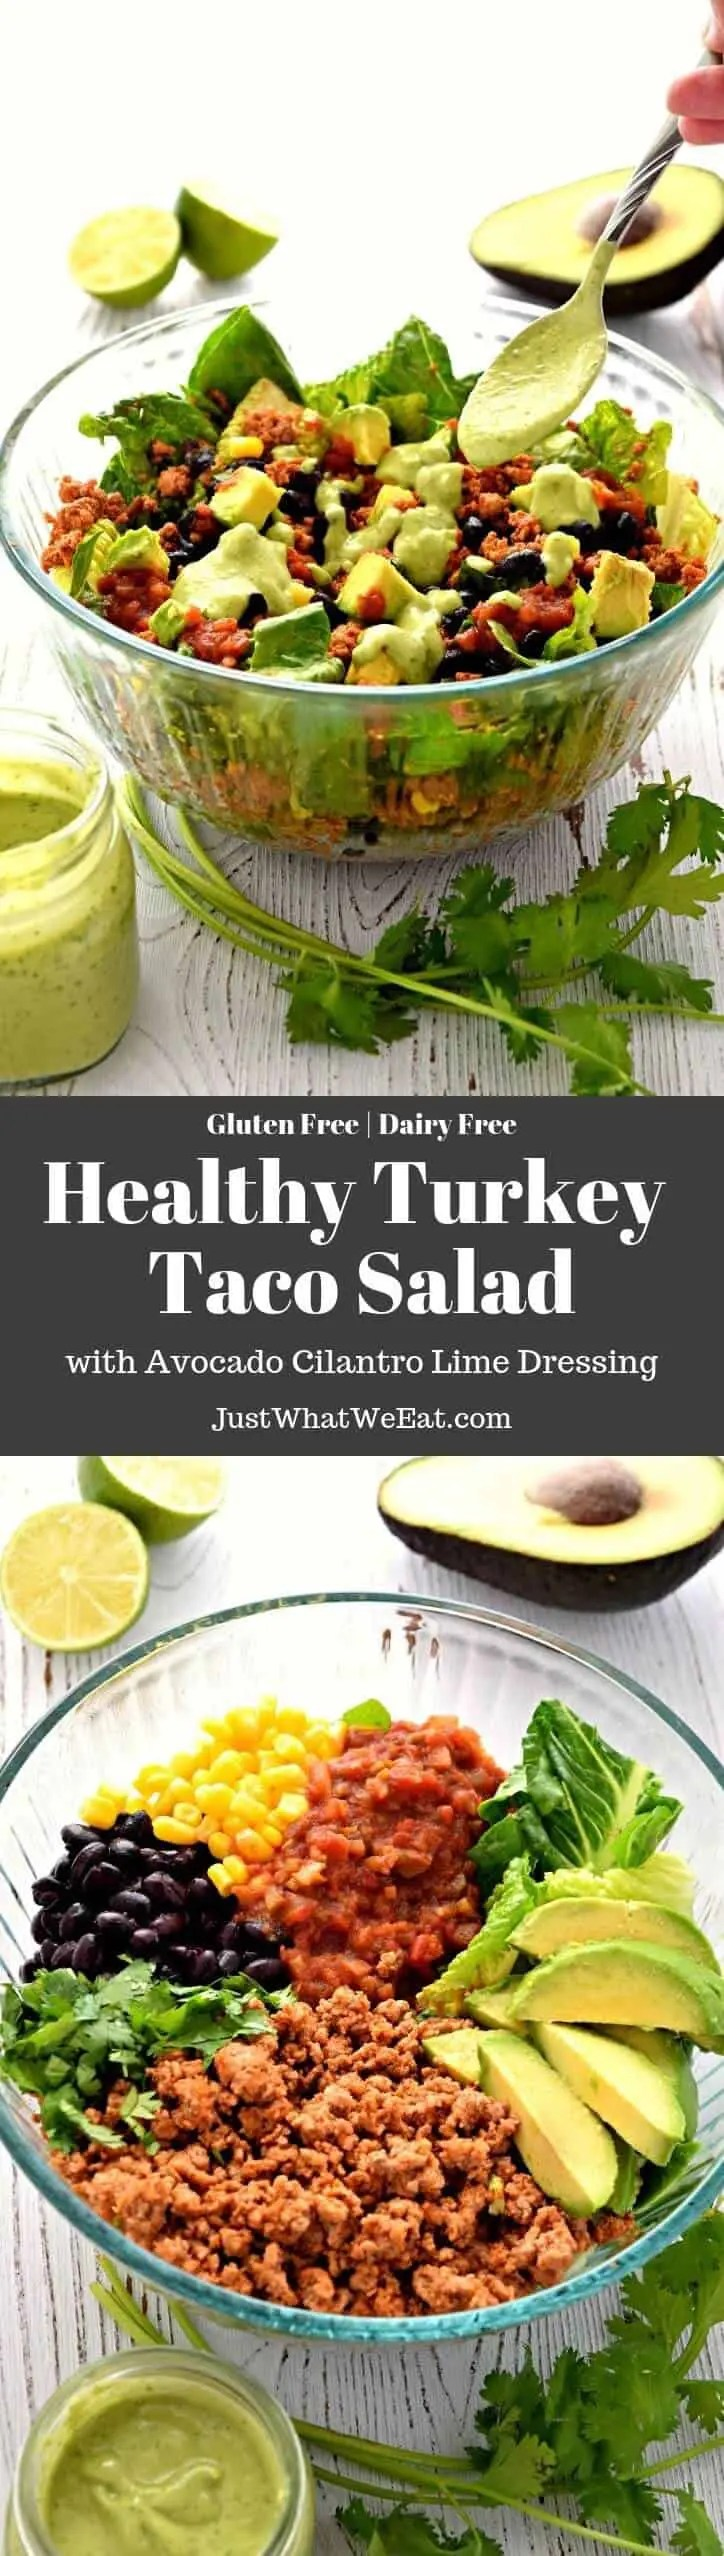 This gluten free and dairy free Turkey Taco Salad is the perfect healthy meal! It's super easy to make and works great for meal prep or a quick weeknight dinner.